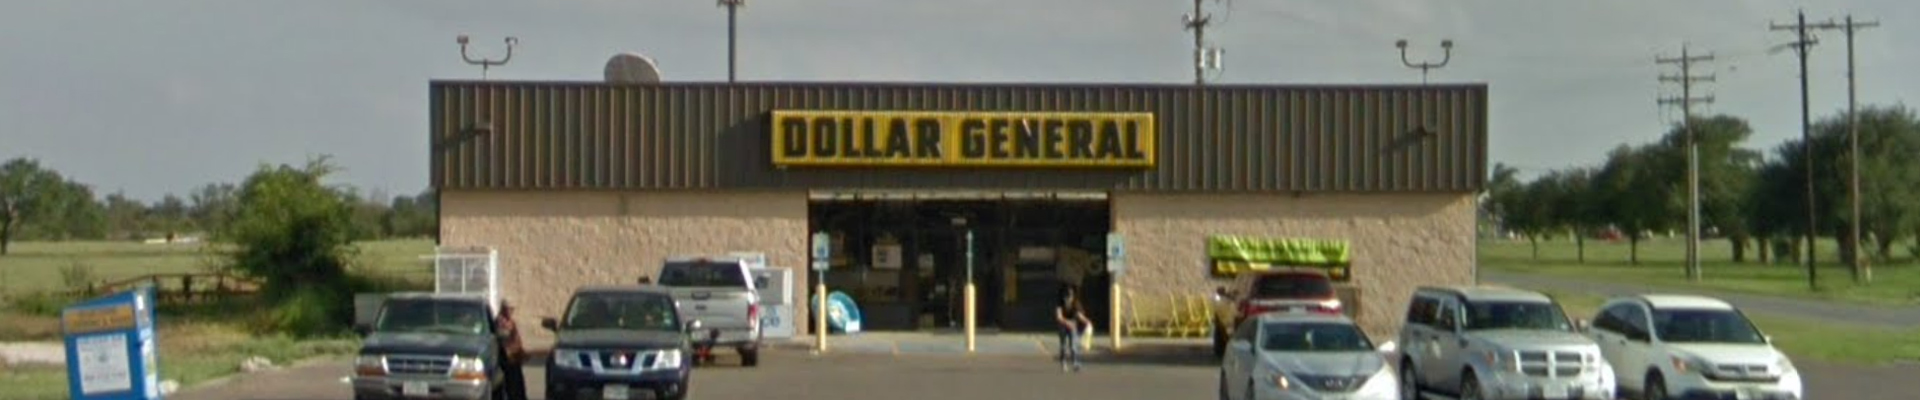 Dollar General (10292) – Edcouch, Texas